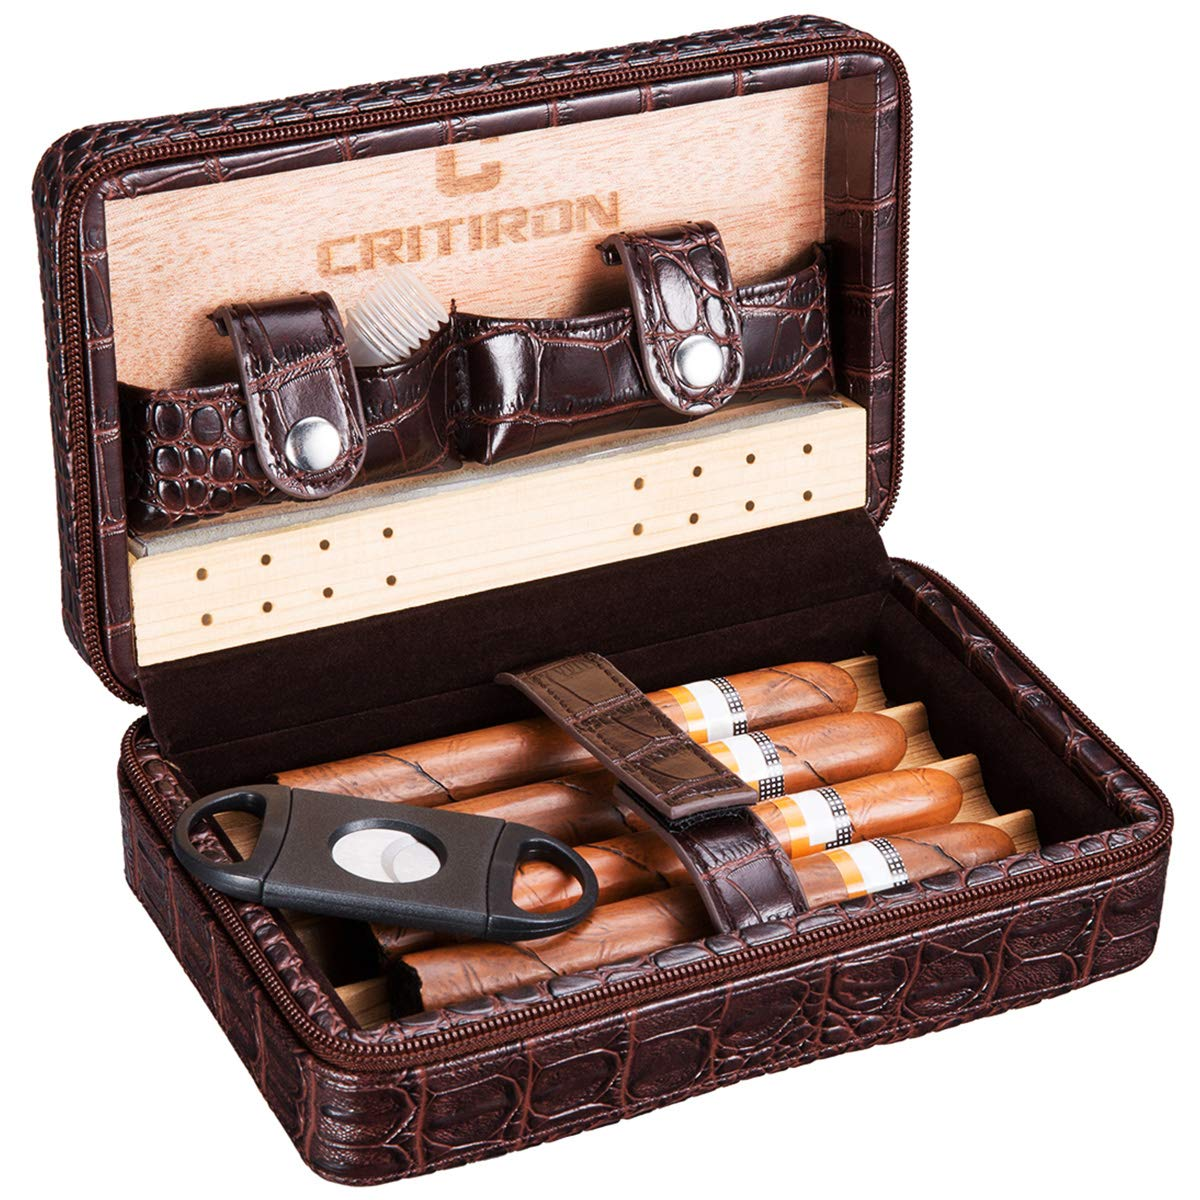 CRITIRON Portable Cigar Case Crocodile Leather Humidor Travel Cigar Cases for Men with Cutter, Dropper, Cedar Wood Lined with Humidifier, Removable Cedar Tray